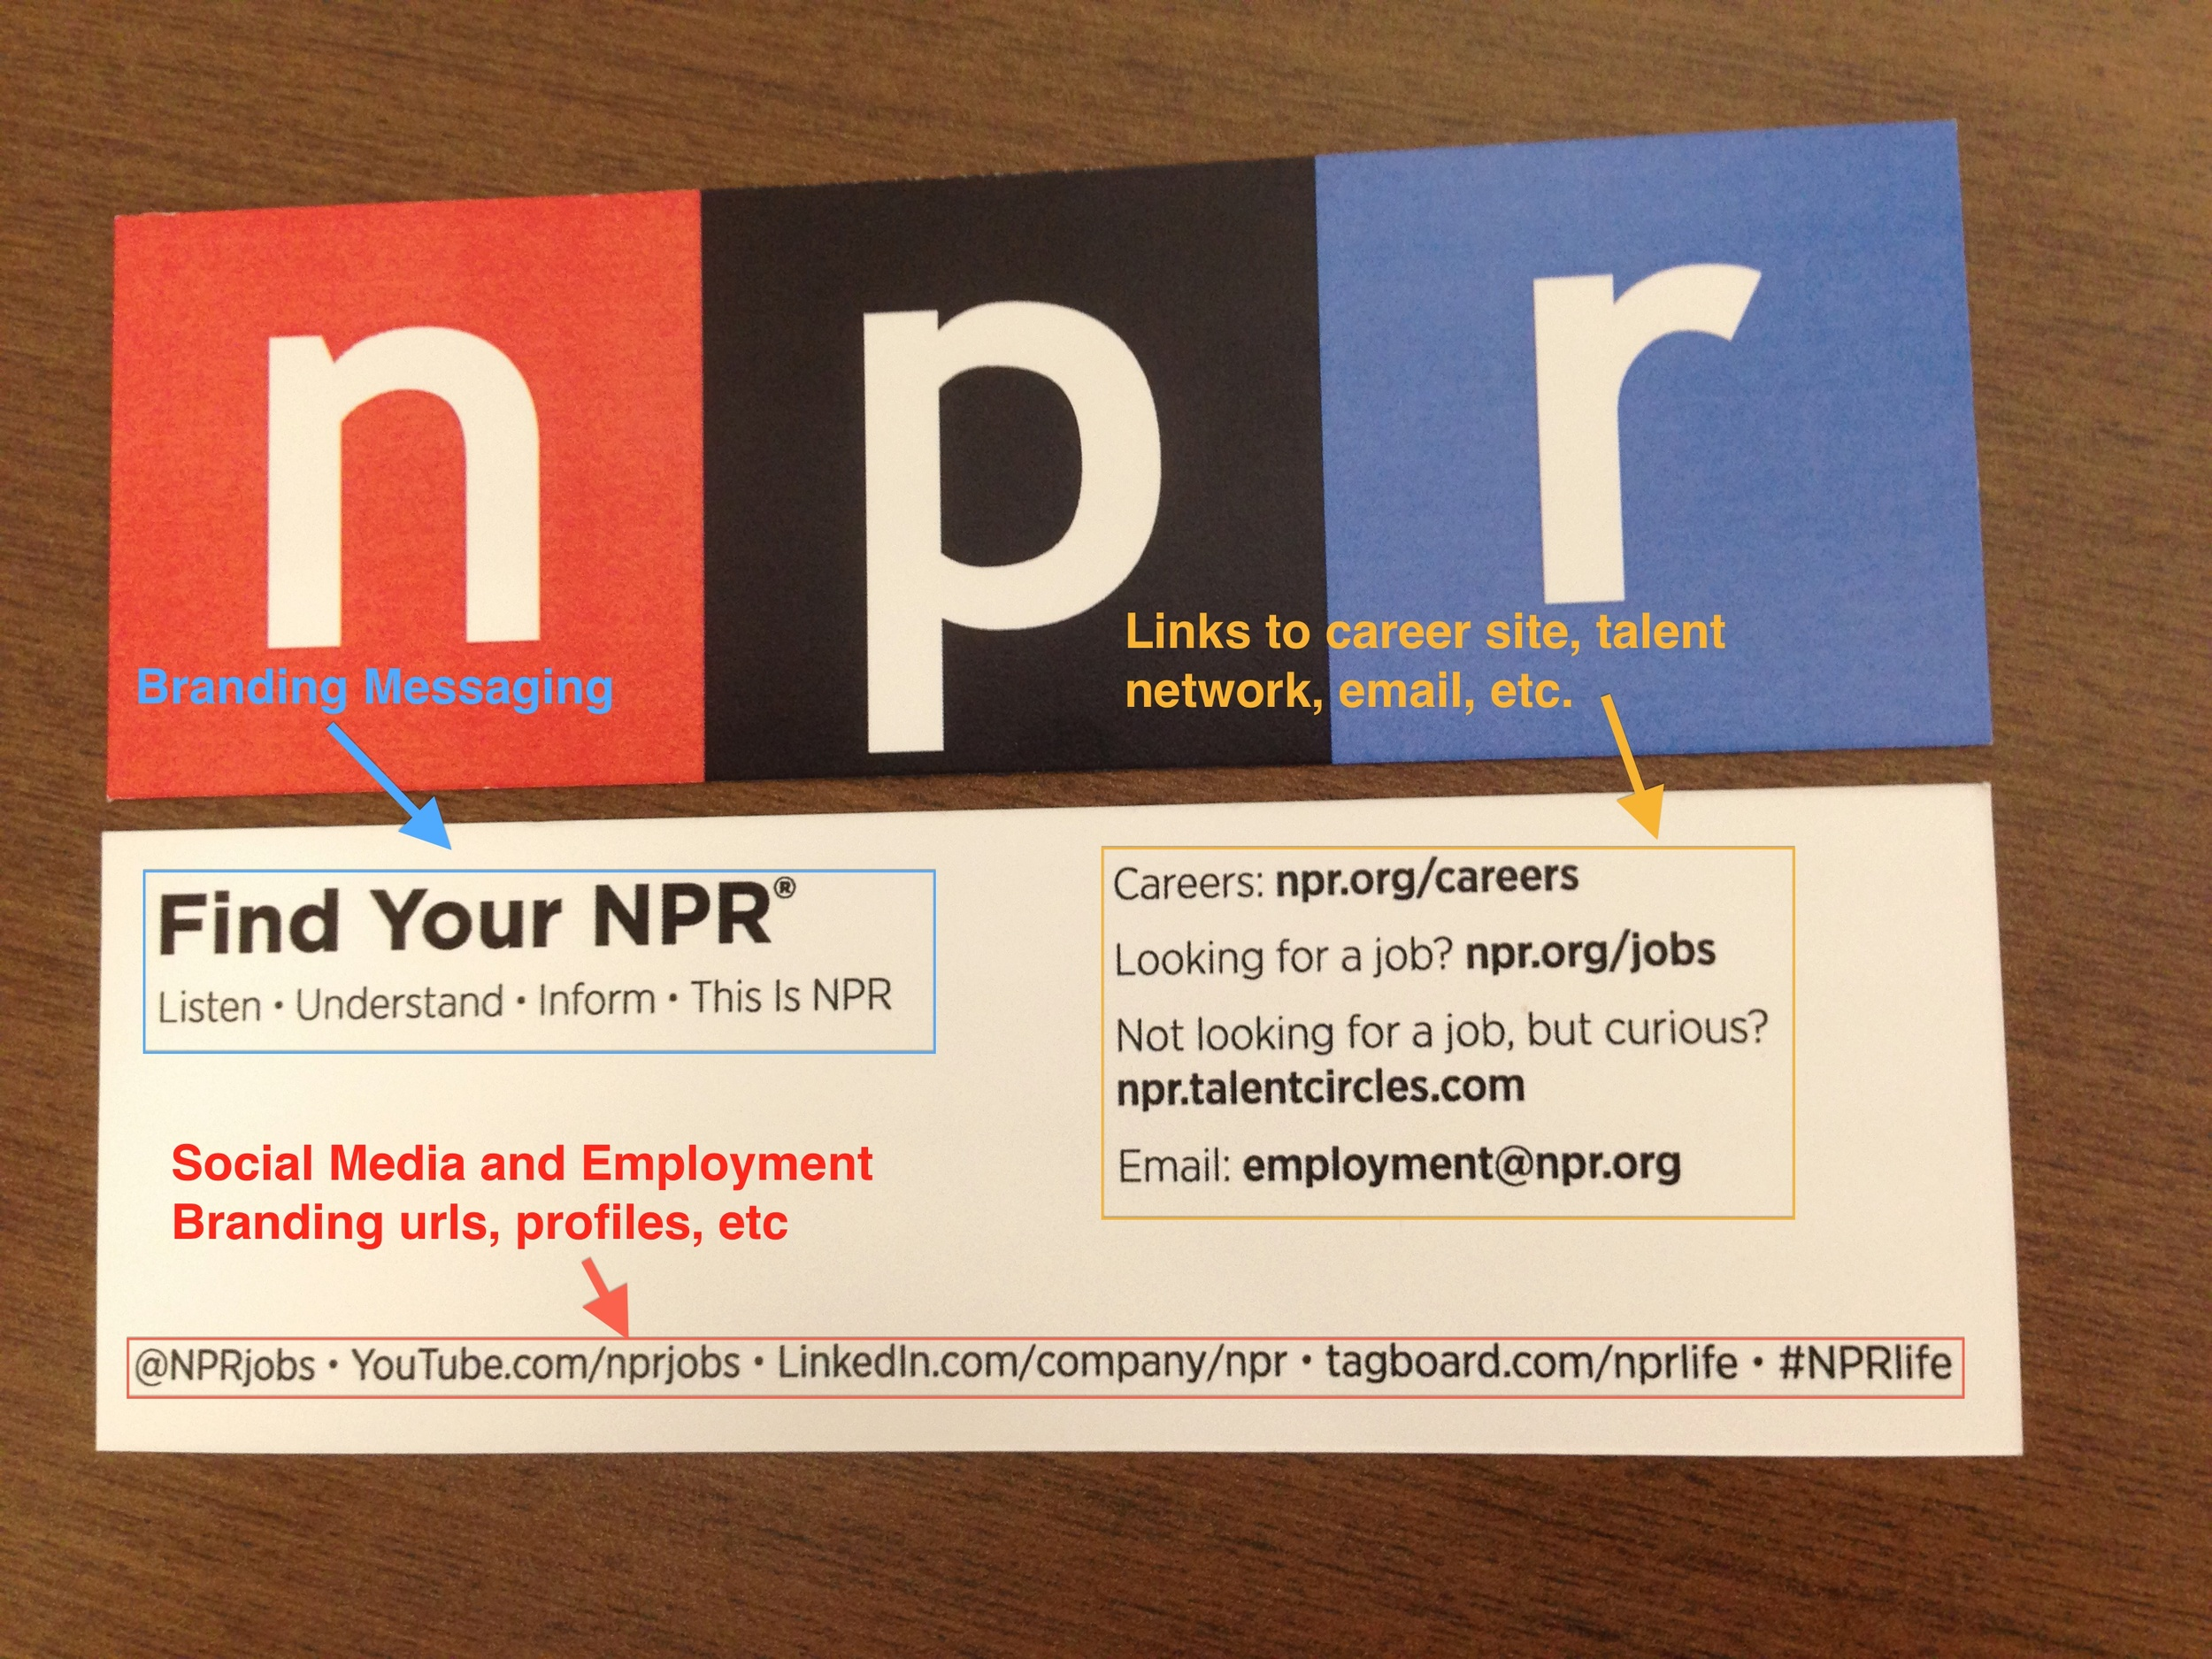 NPR Recruiting Calling Card_notes